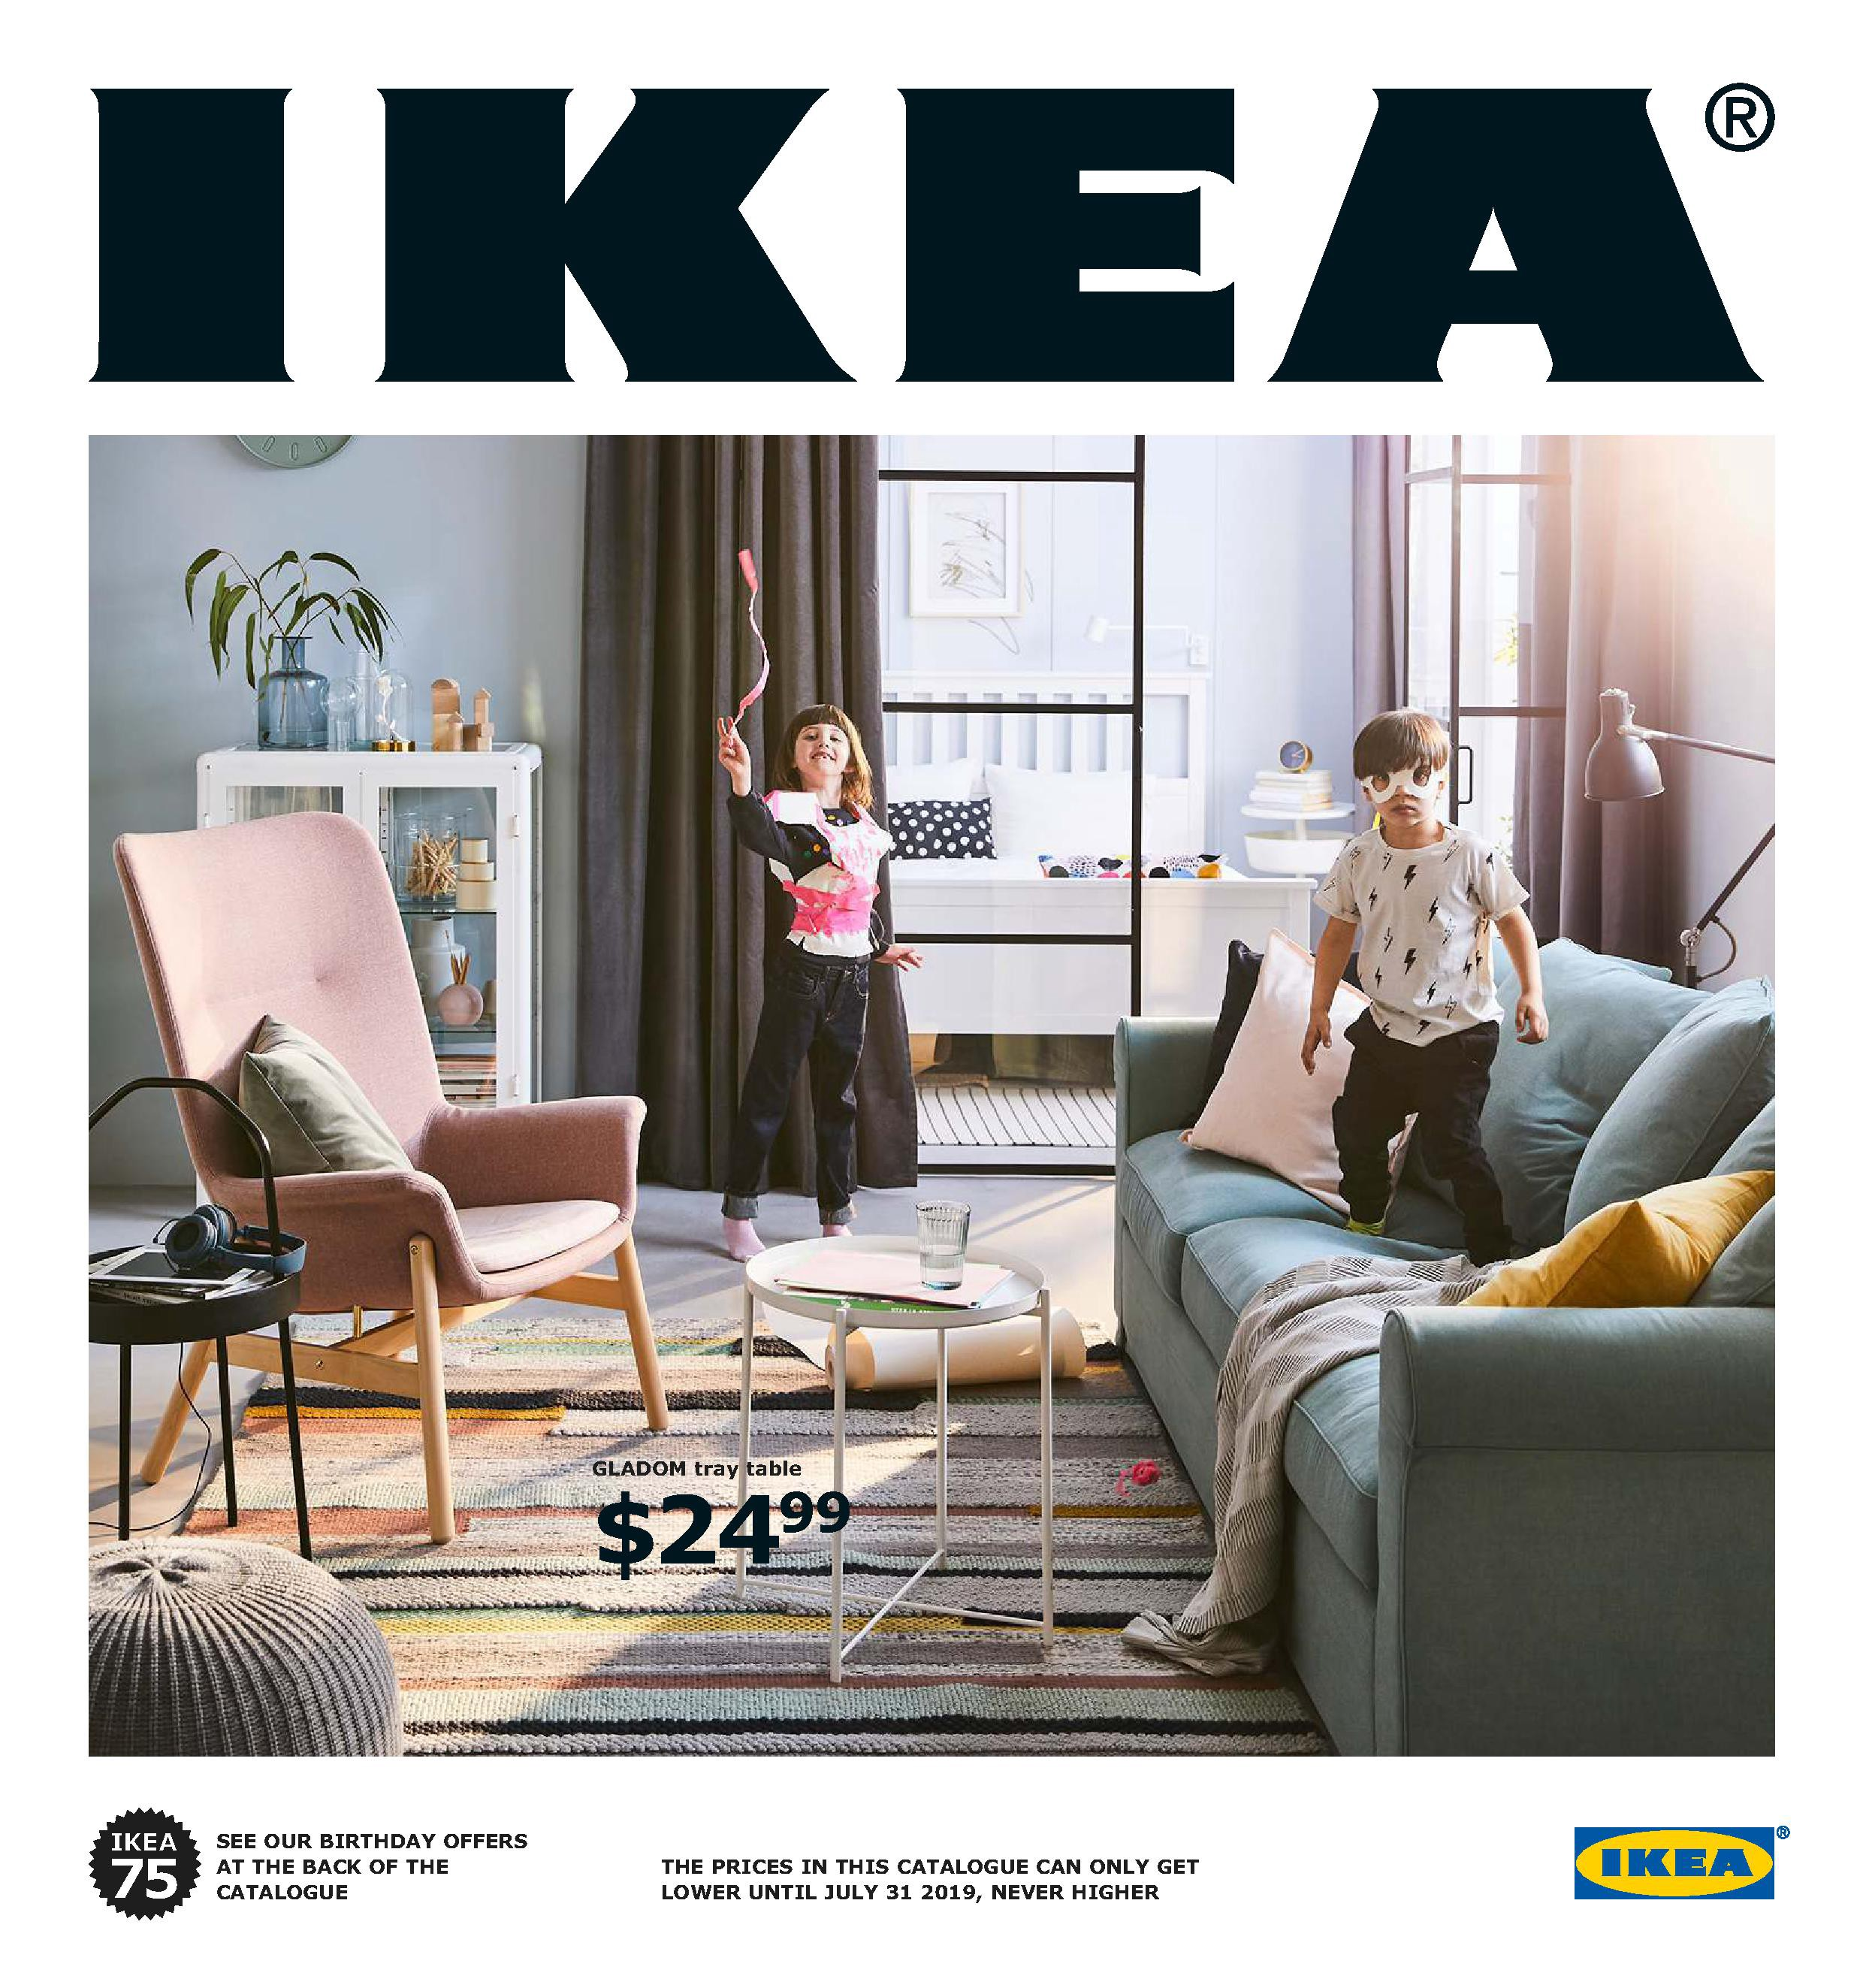 How IKEA Allows Us to Dream: Reviewing the 12 IKEA Canada